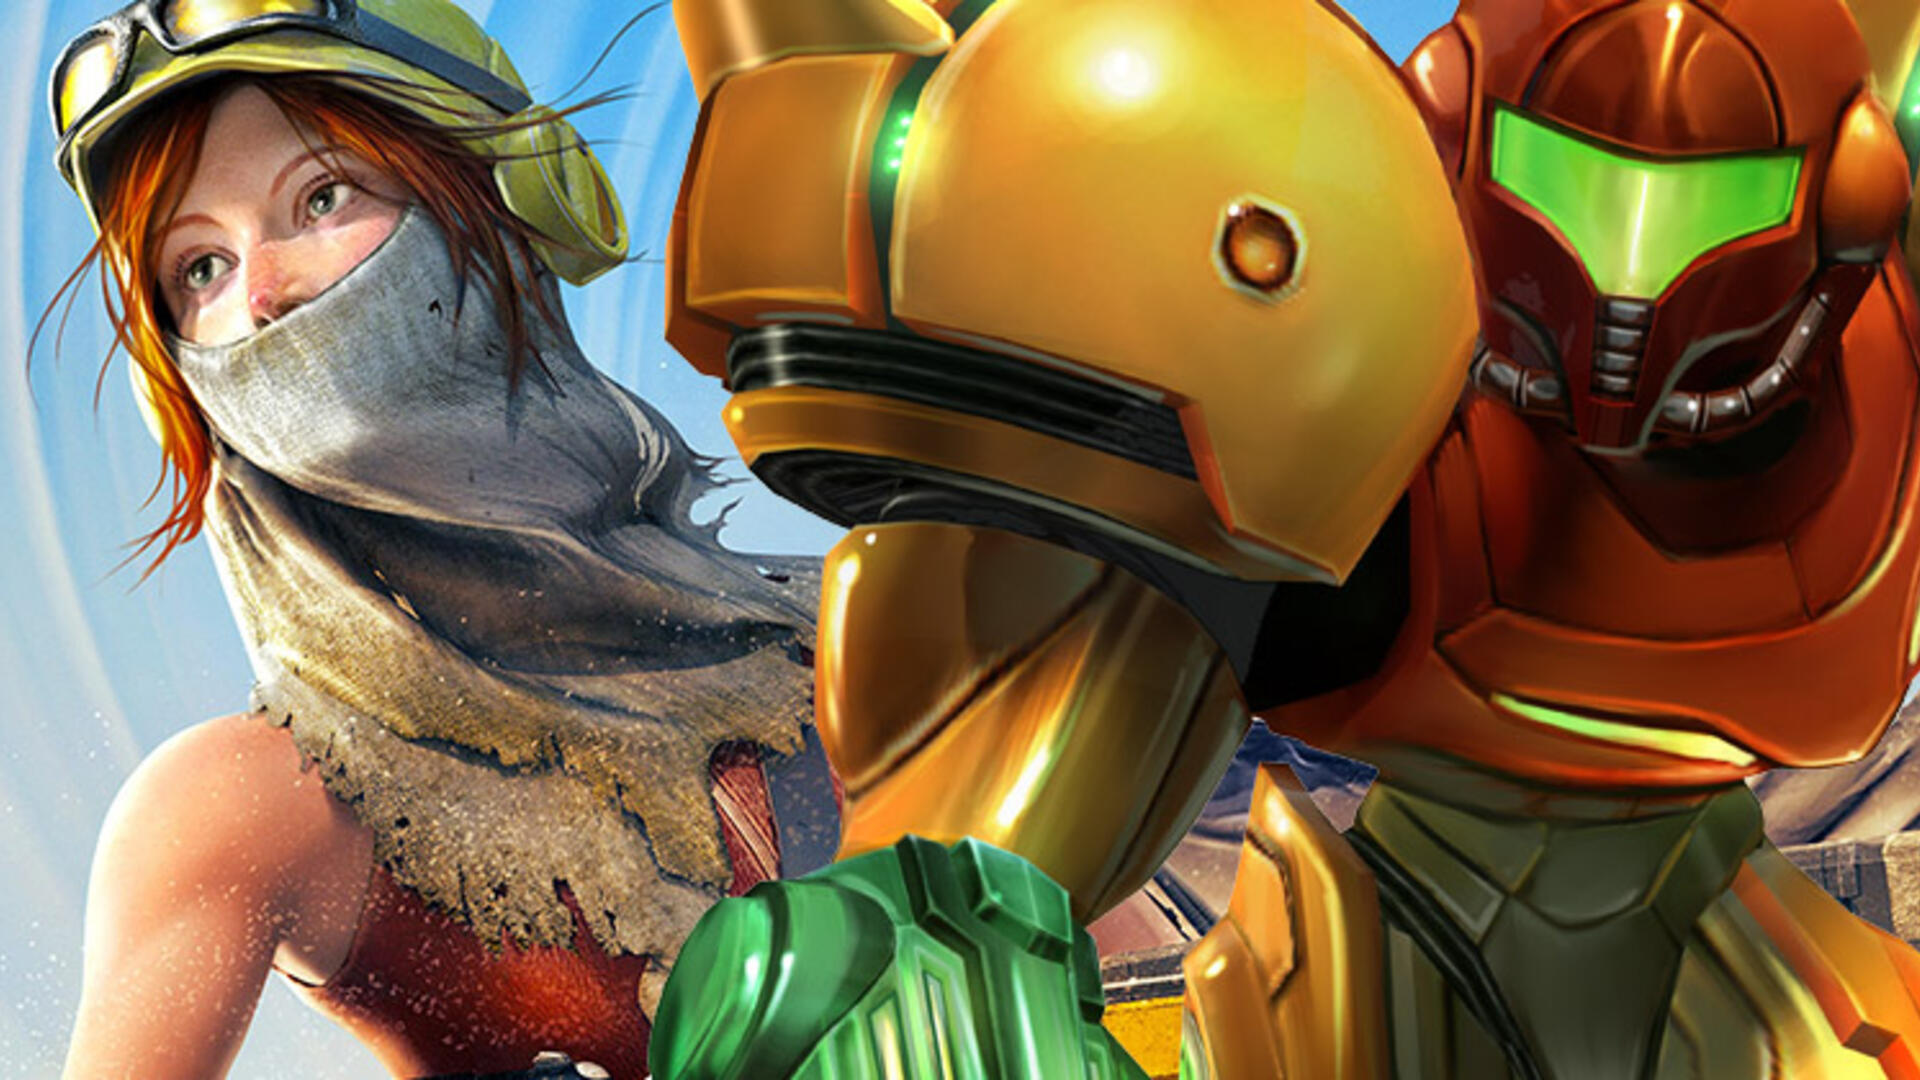 More Than Just a Reference, ReCore's Metroid Prime Link Improves on A Classic